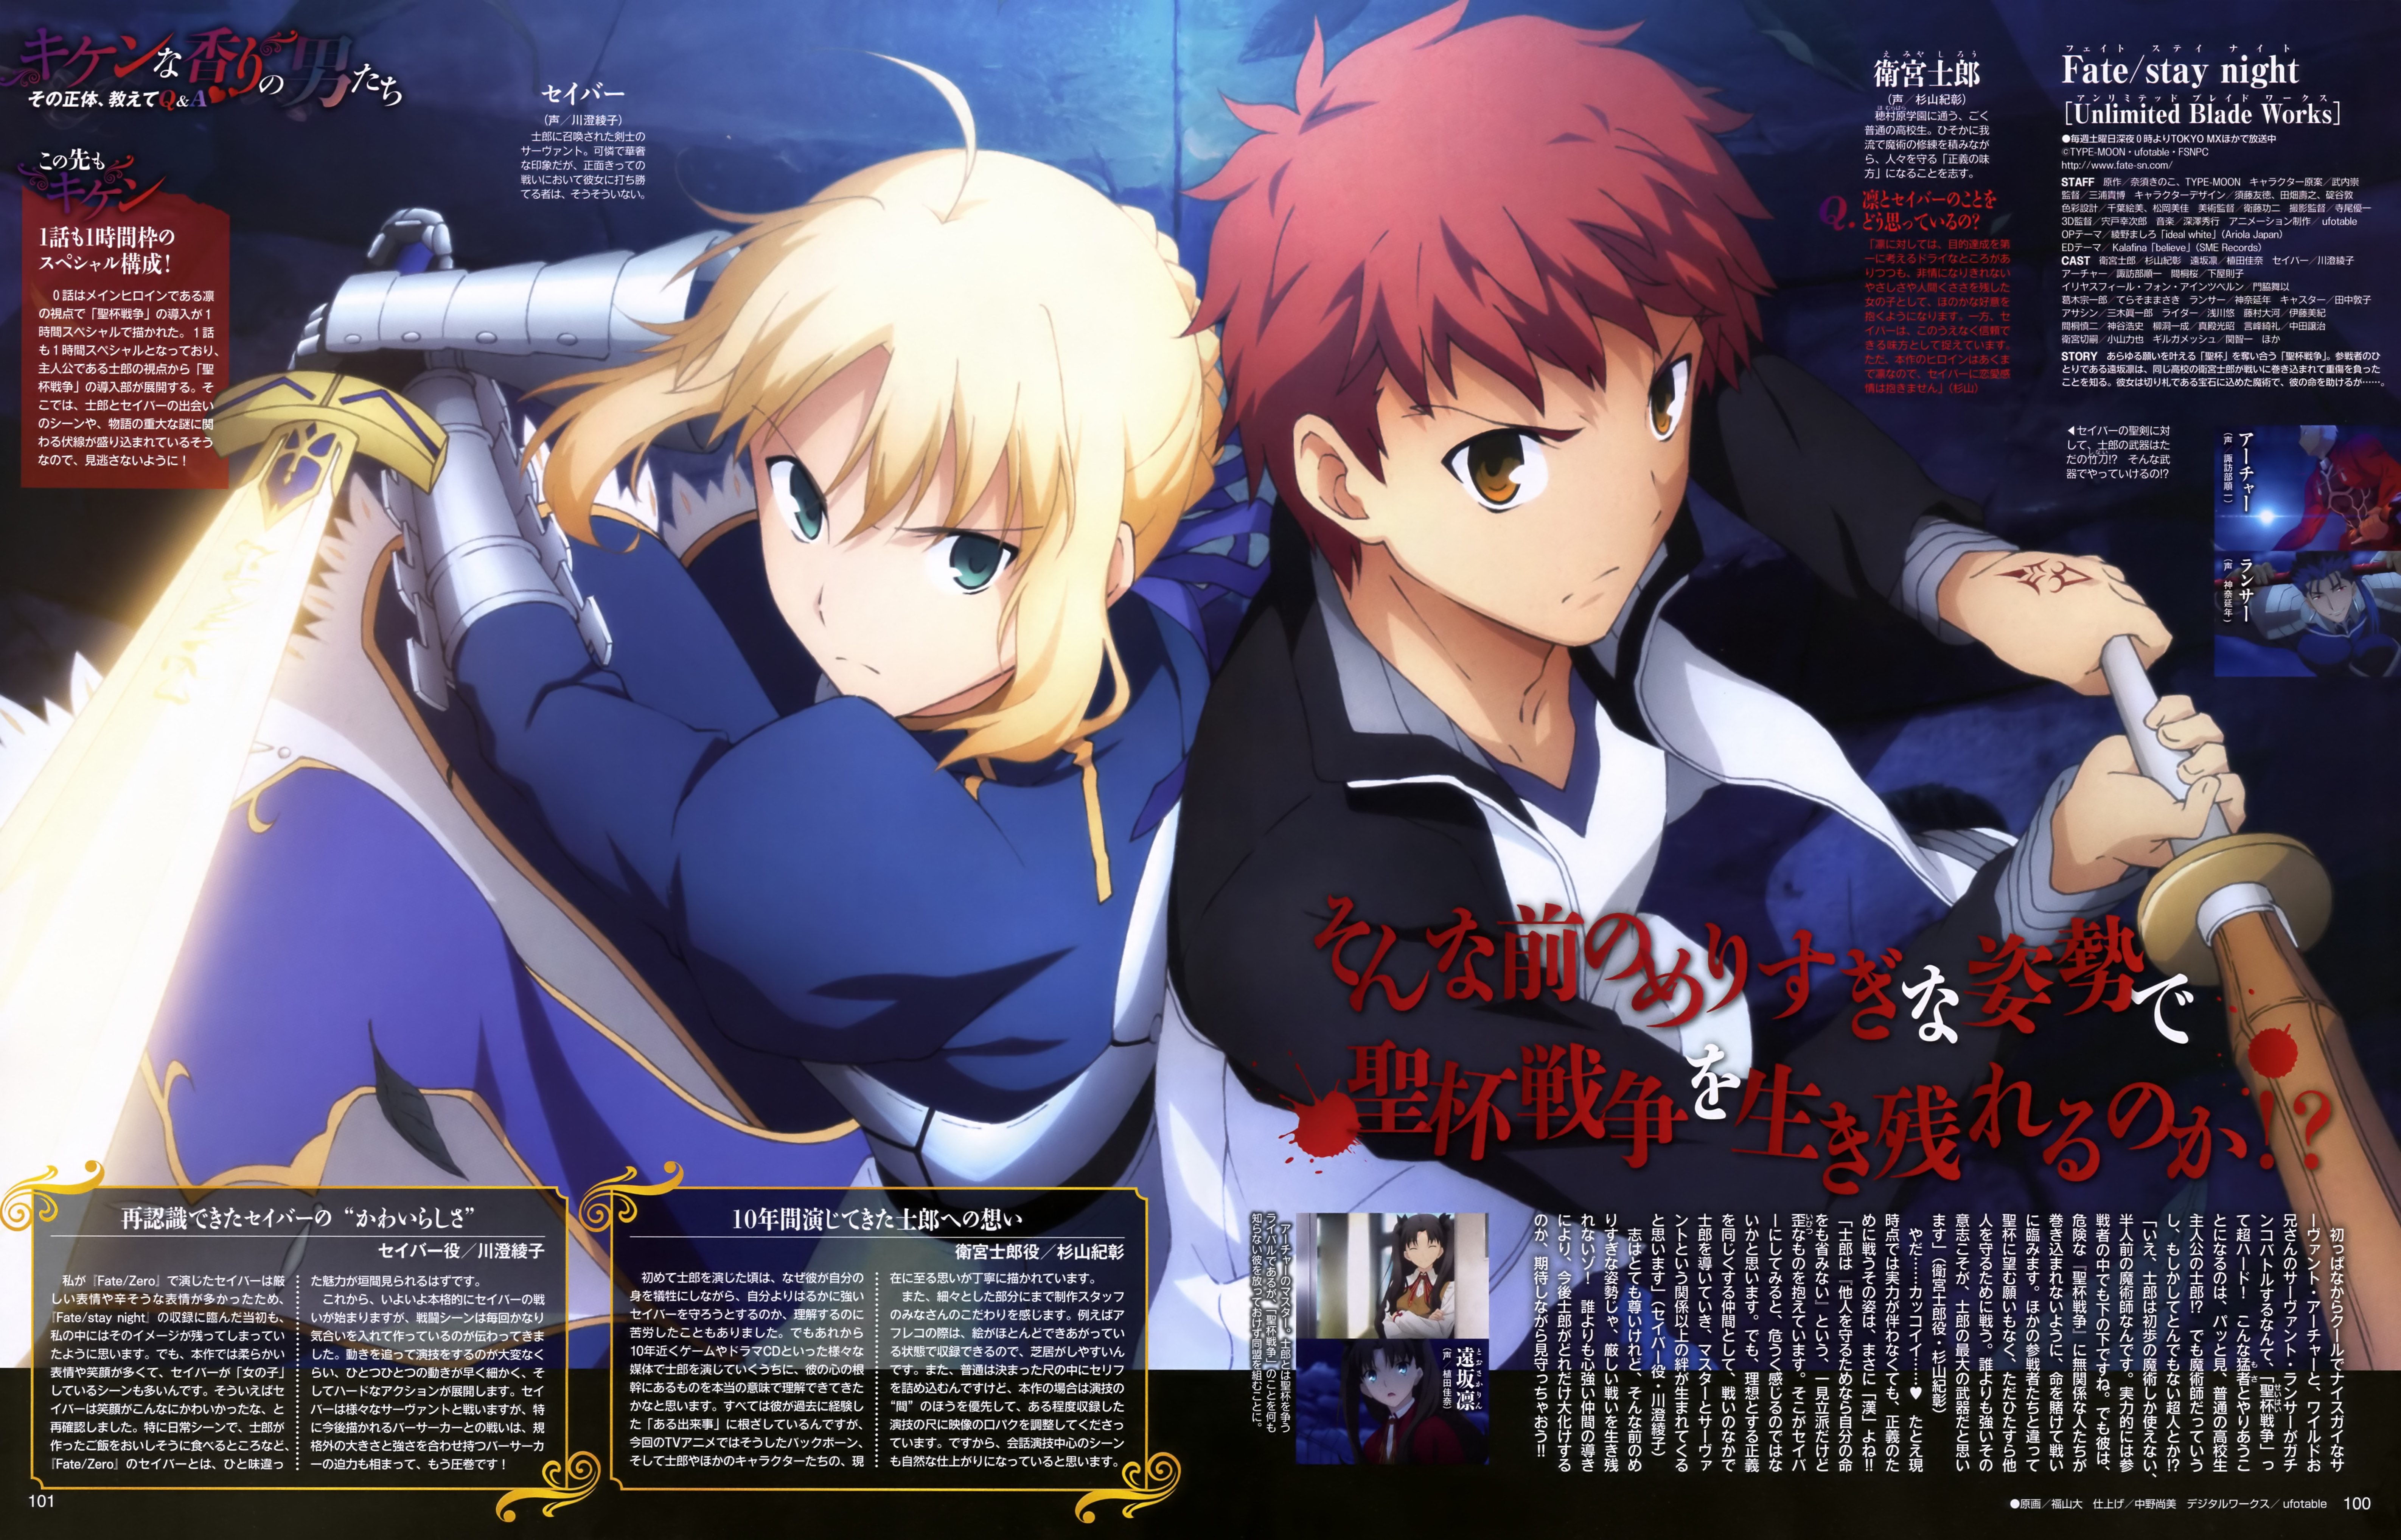 Top 10 Best Anime Series from 2014 According to Animeanime haruhichan.com fate stay night 2014 fsn ubw